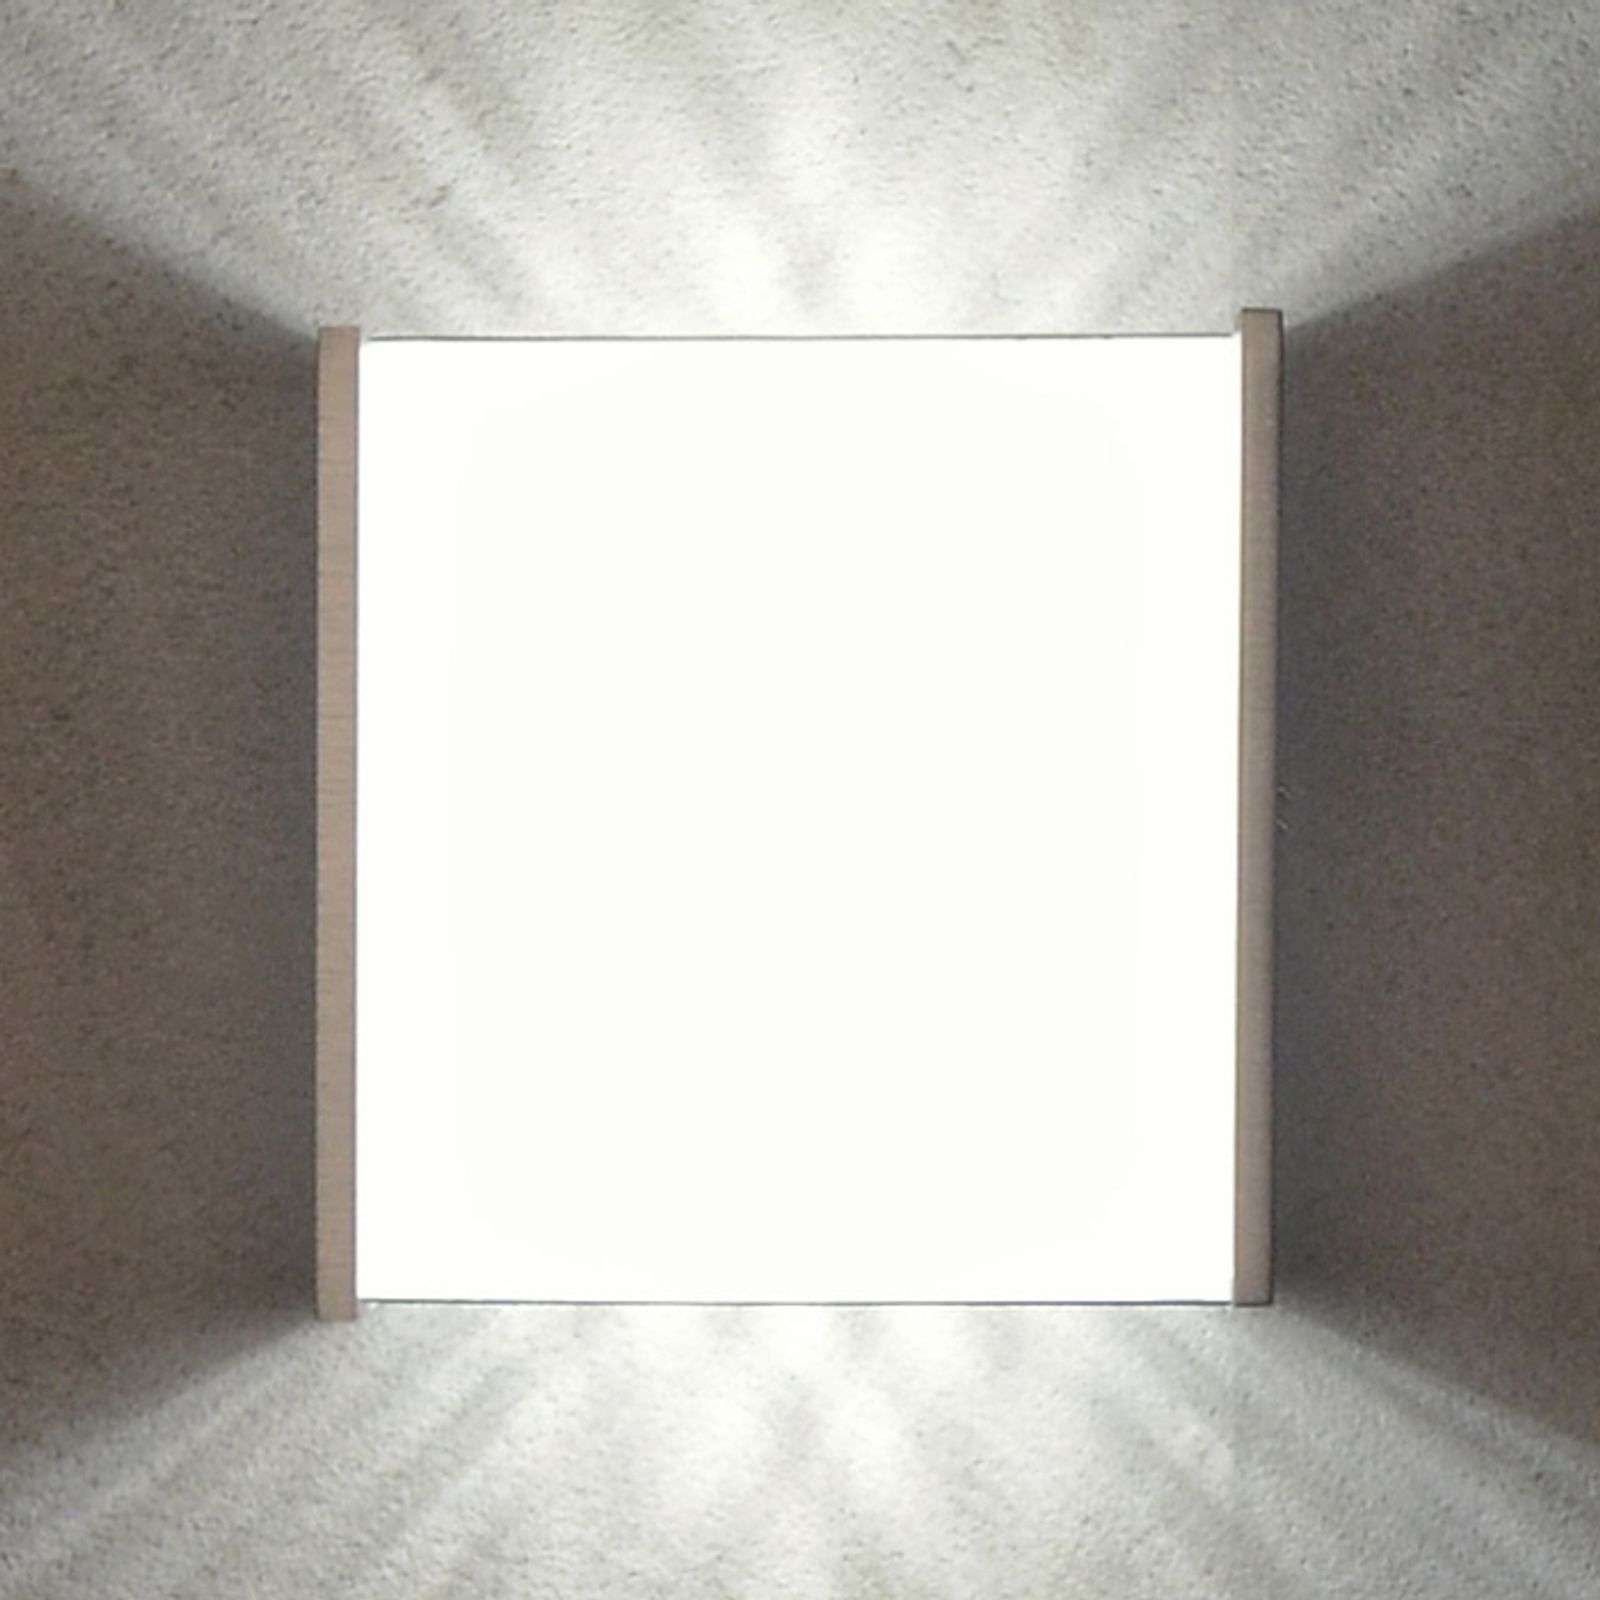 Applique a LED Box d'effetto